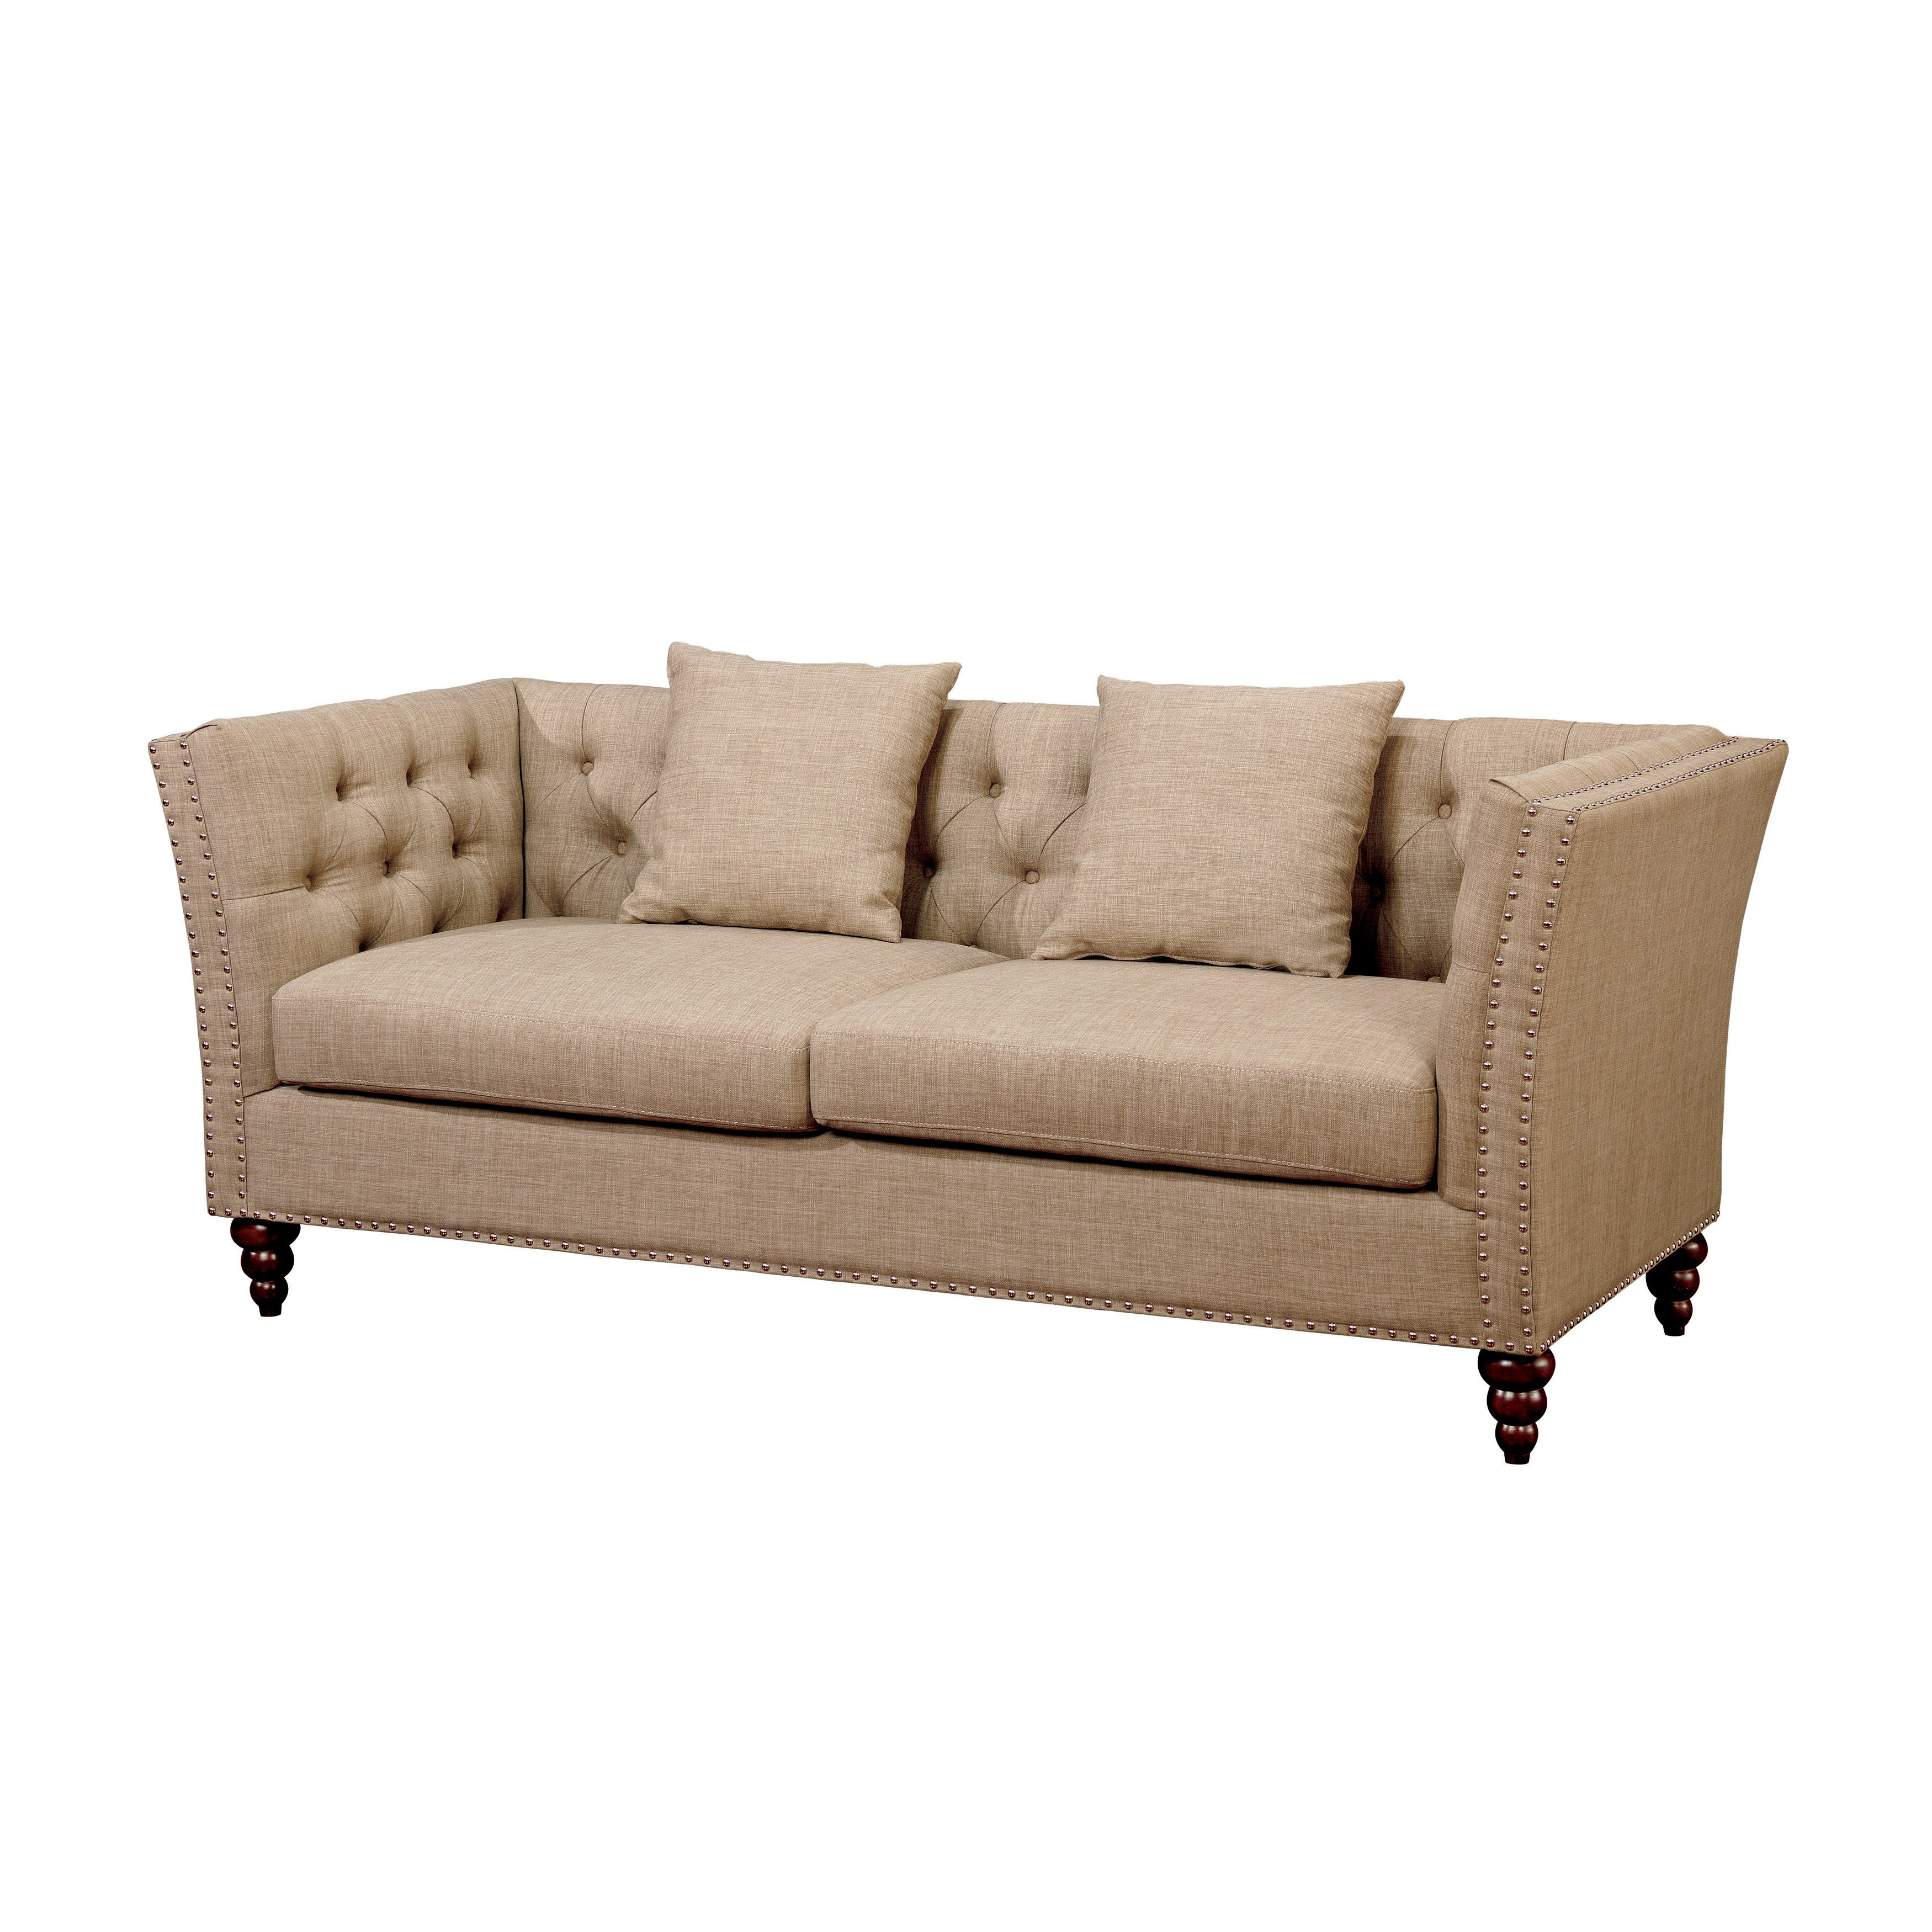 Merveilleux Shop Furniture Of America Cerona Contemporary Tuxedo Style Beige Tufted  Linen Sofa   Free Shipping Today   Overstock.com   14566292